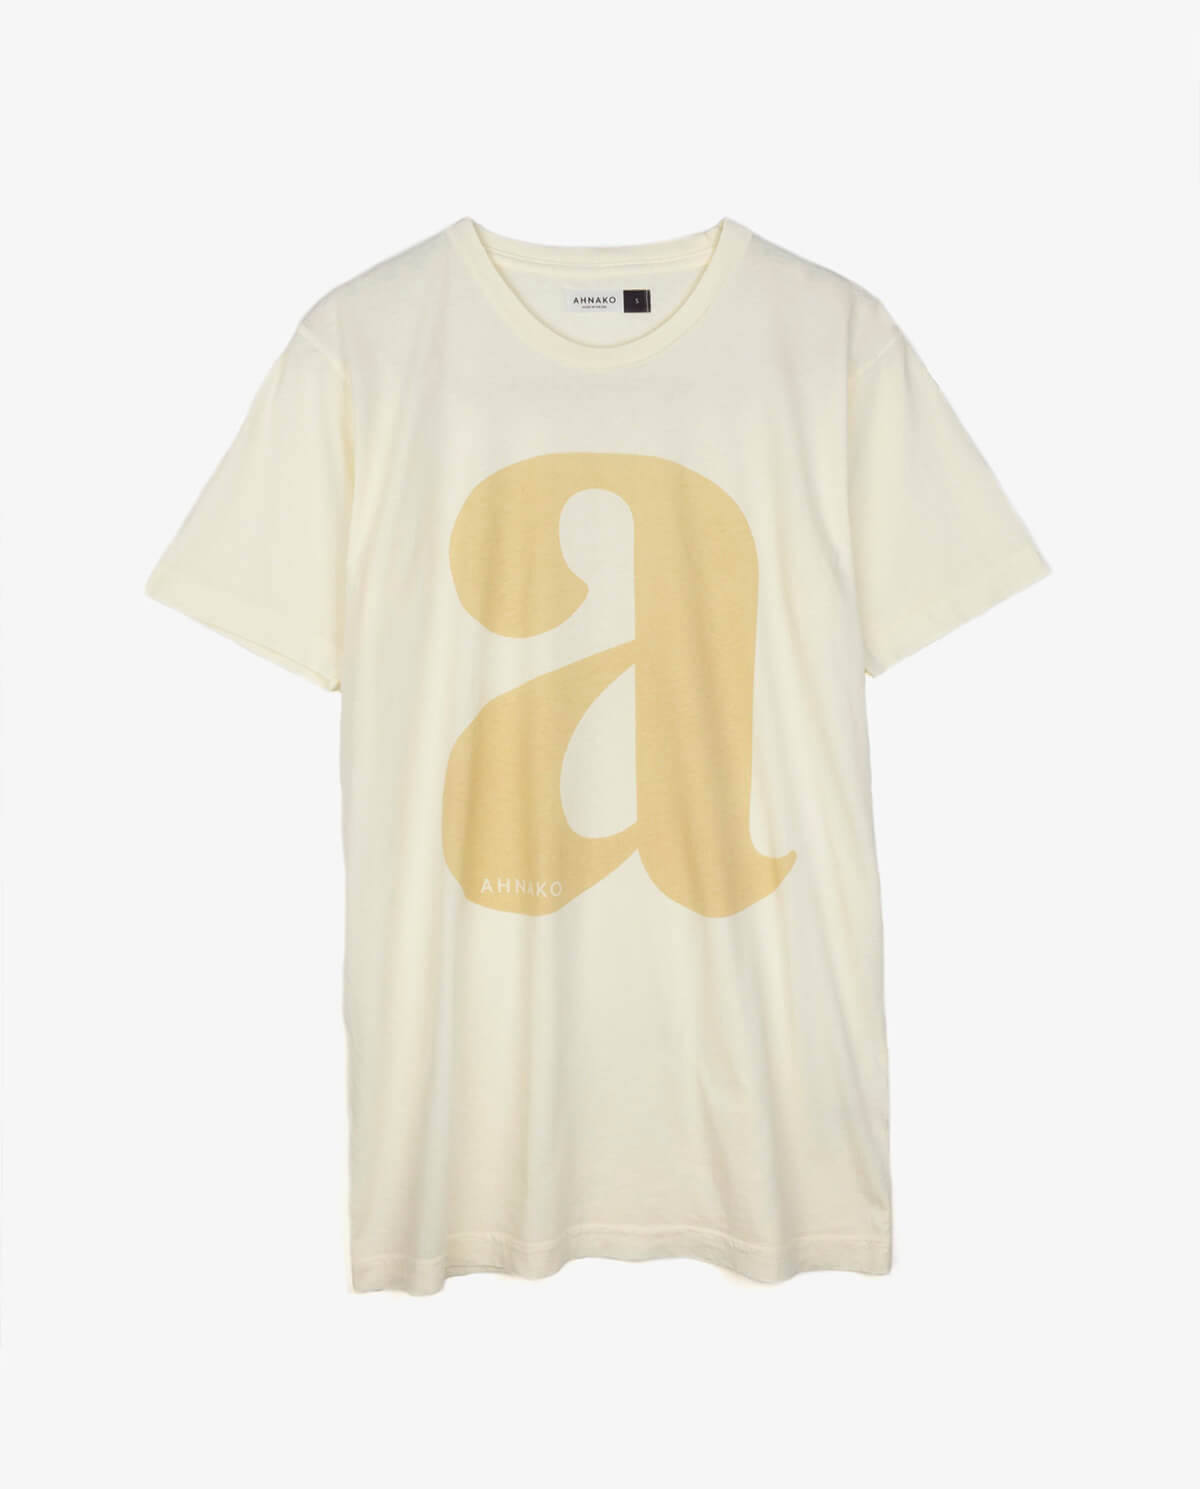 "Ahnako Lowercase ""a"" - Cream T-shirt"